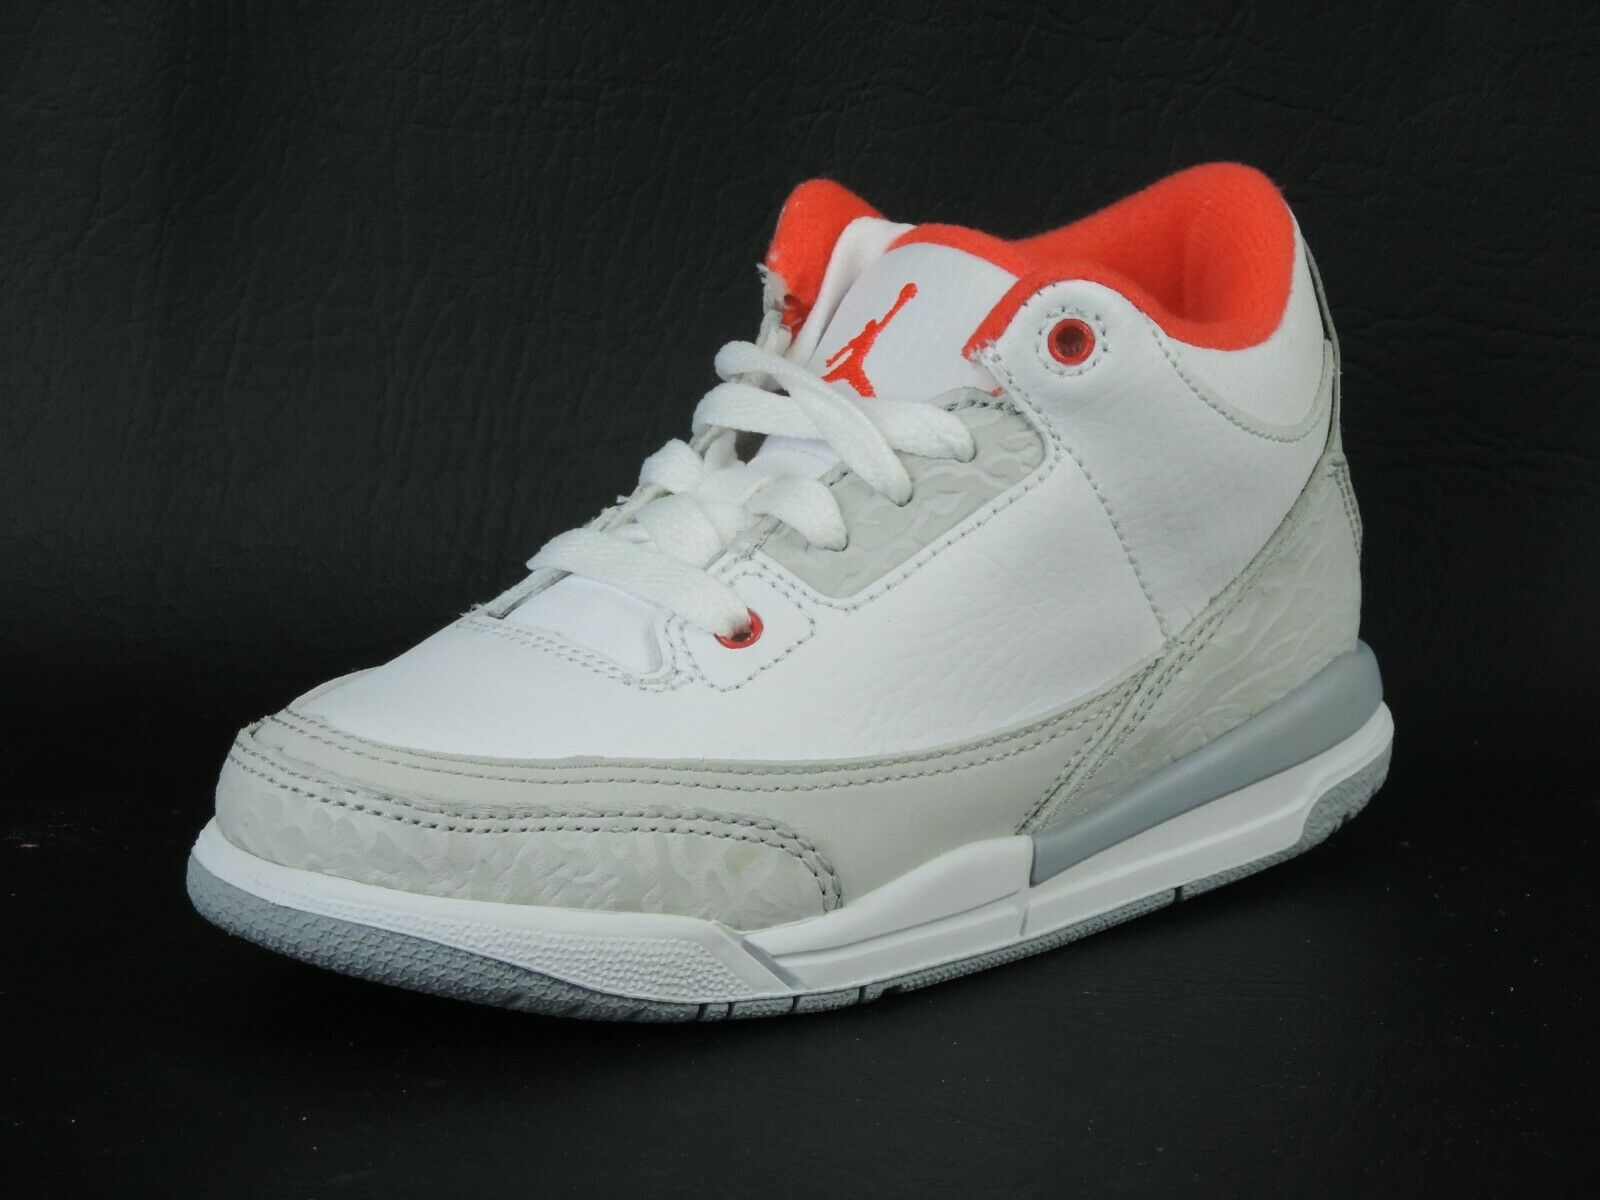 Nike Girls Air Jordan 3 Retro PS 441141 101 White Leather Basketball Vintage DS